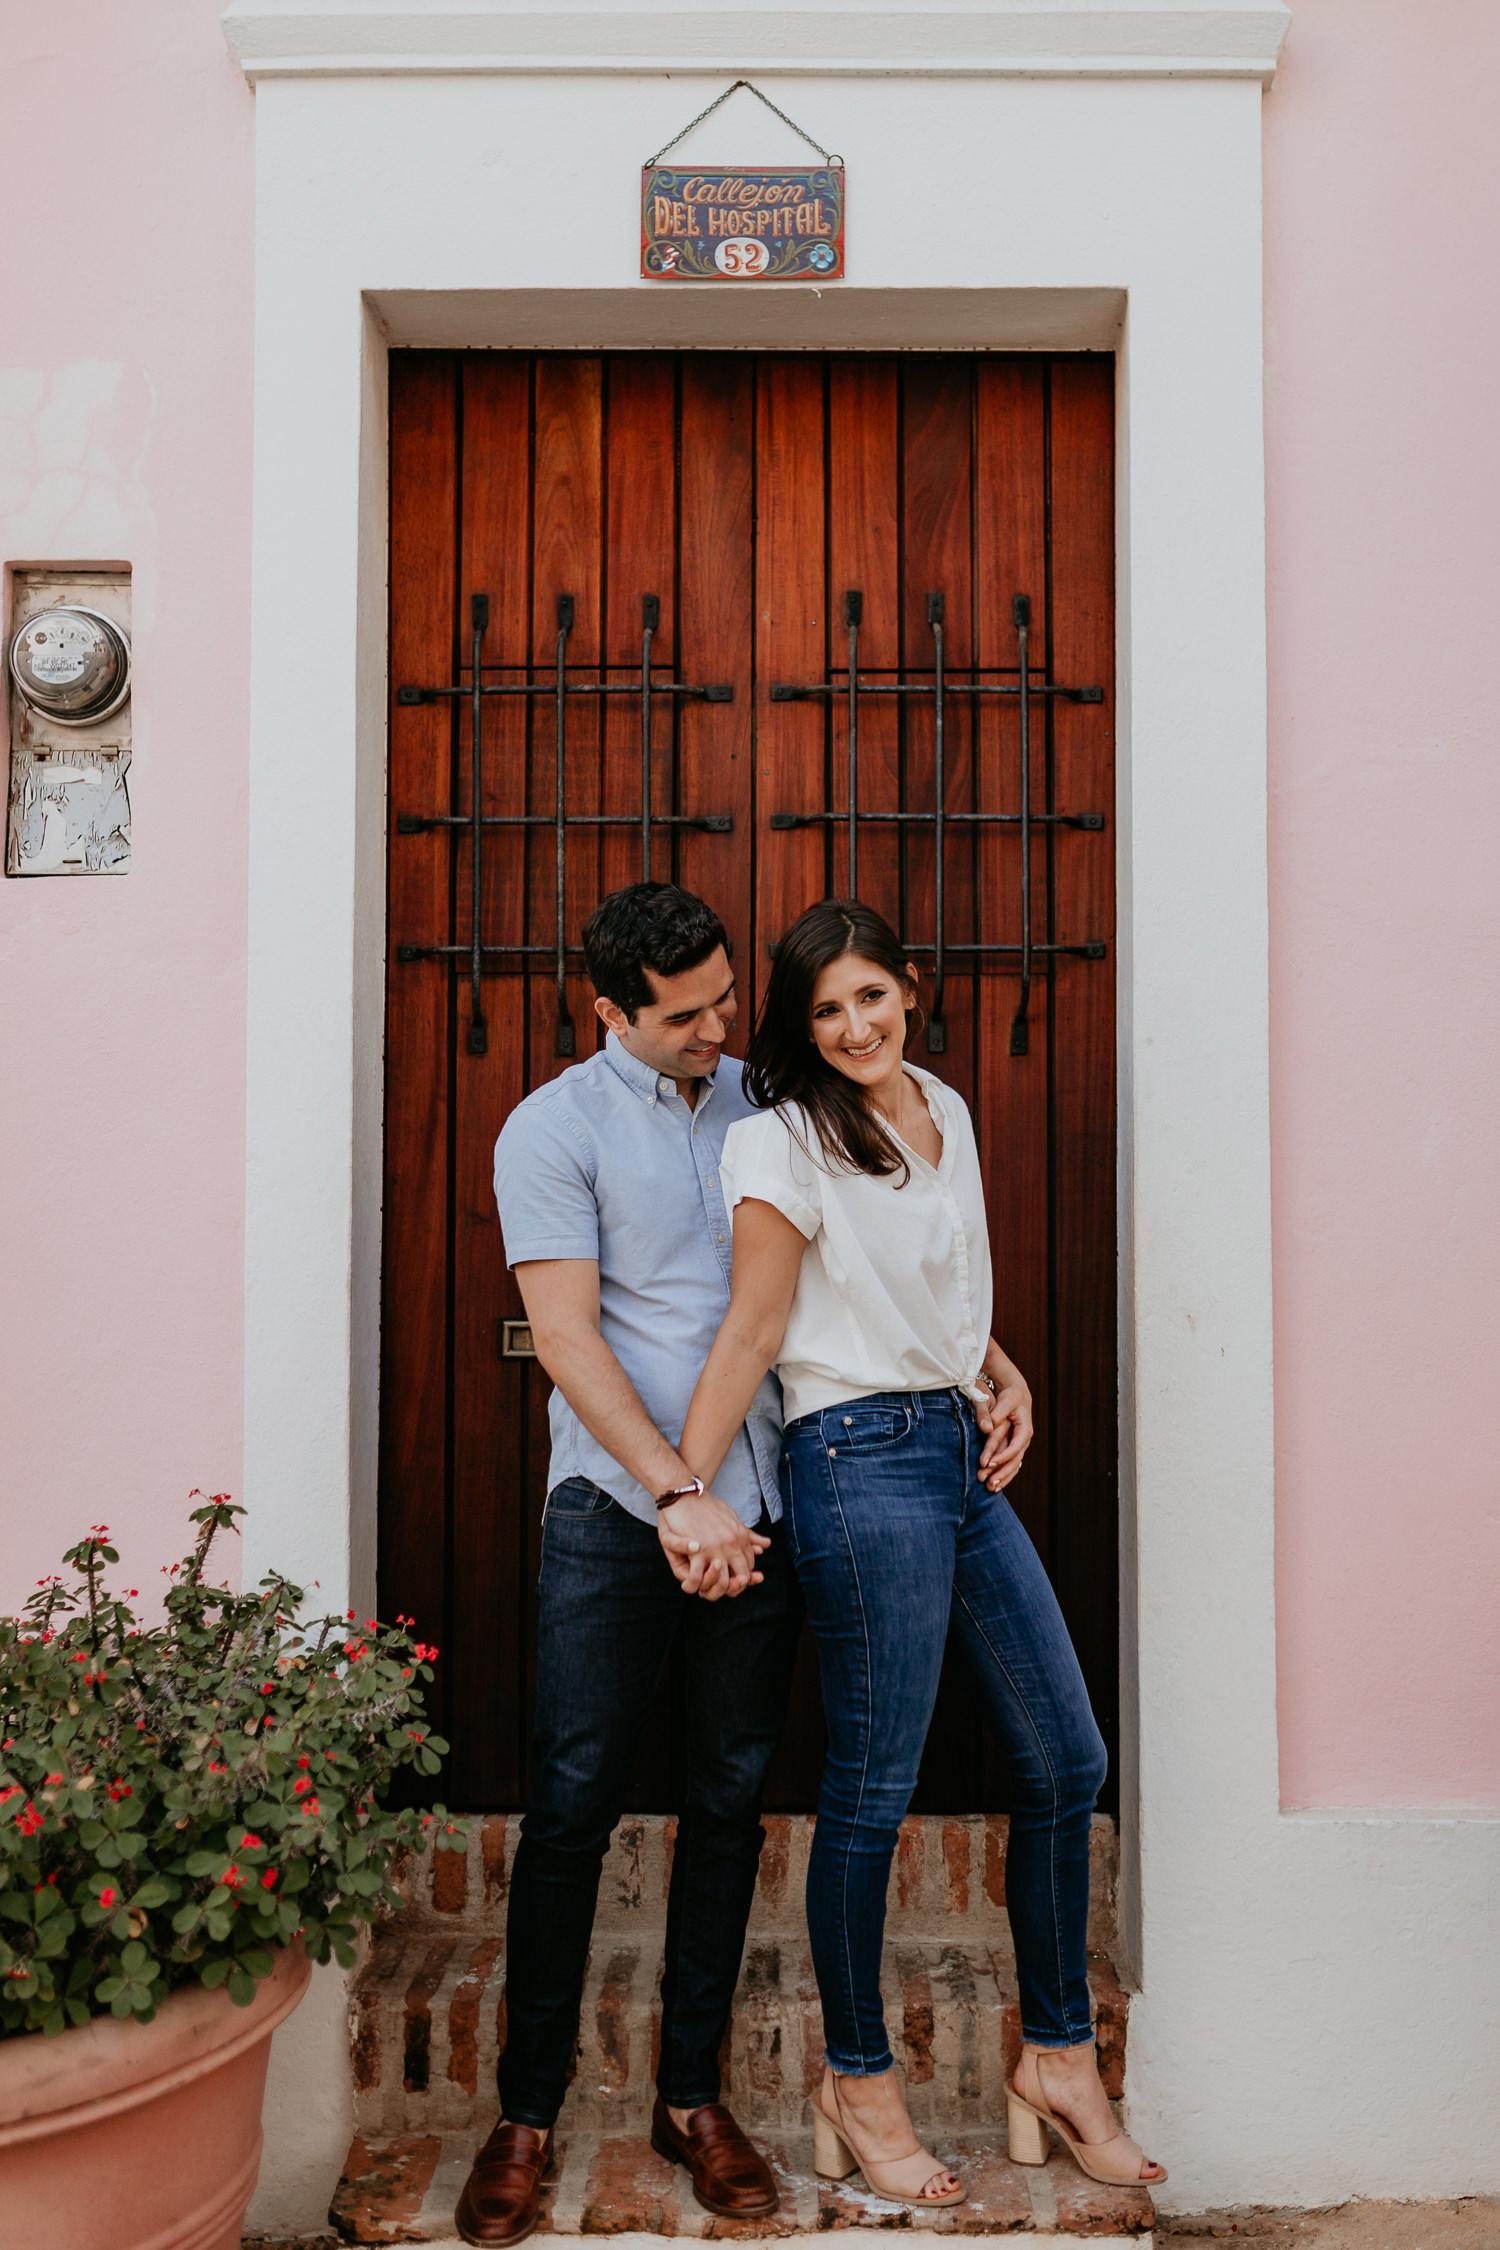 close up of couple standing together in front of wooden door holding hands smiling